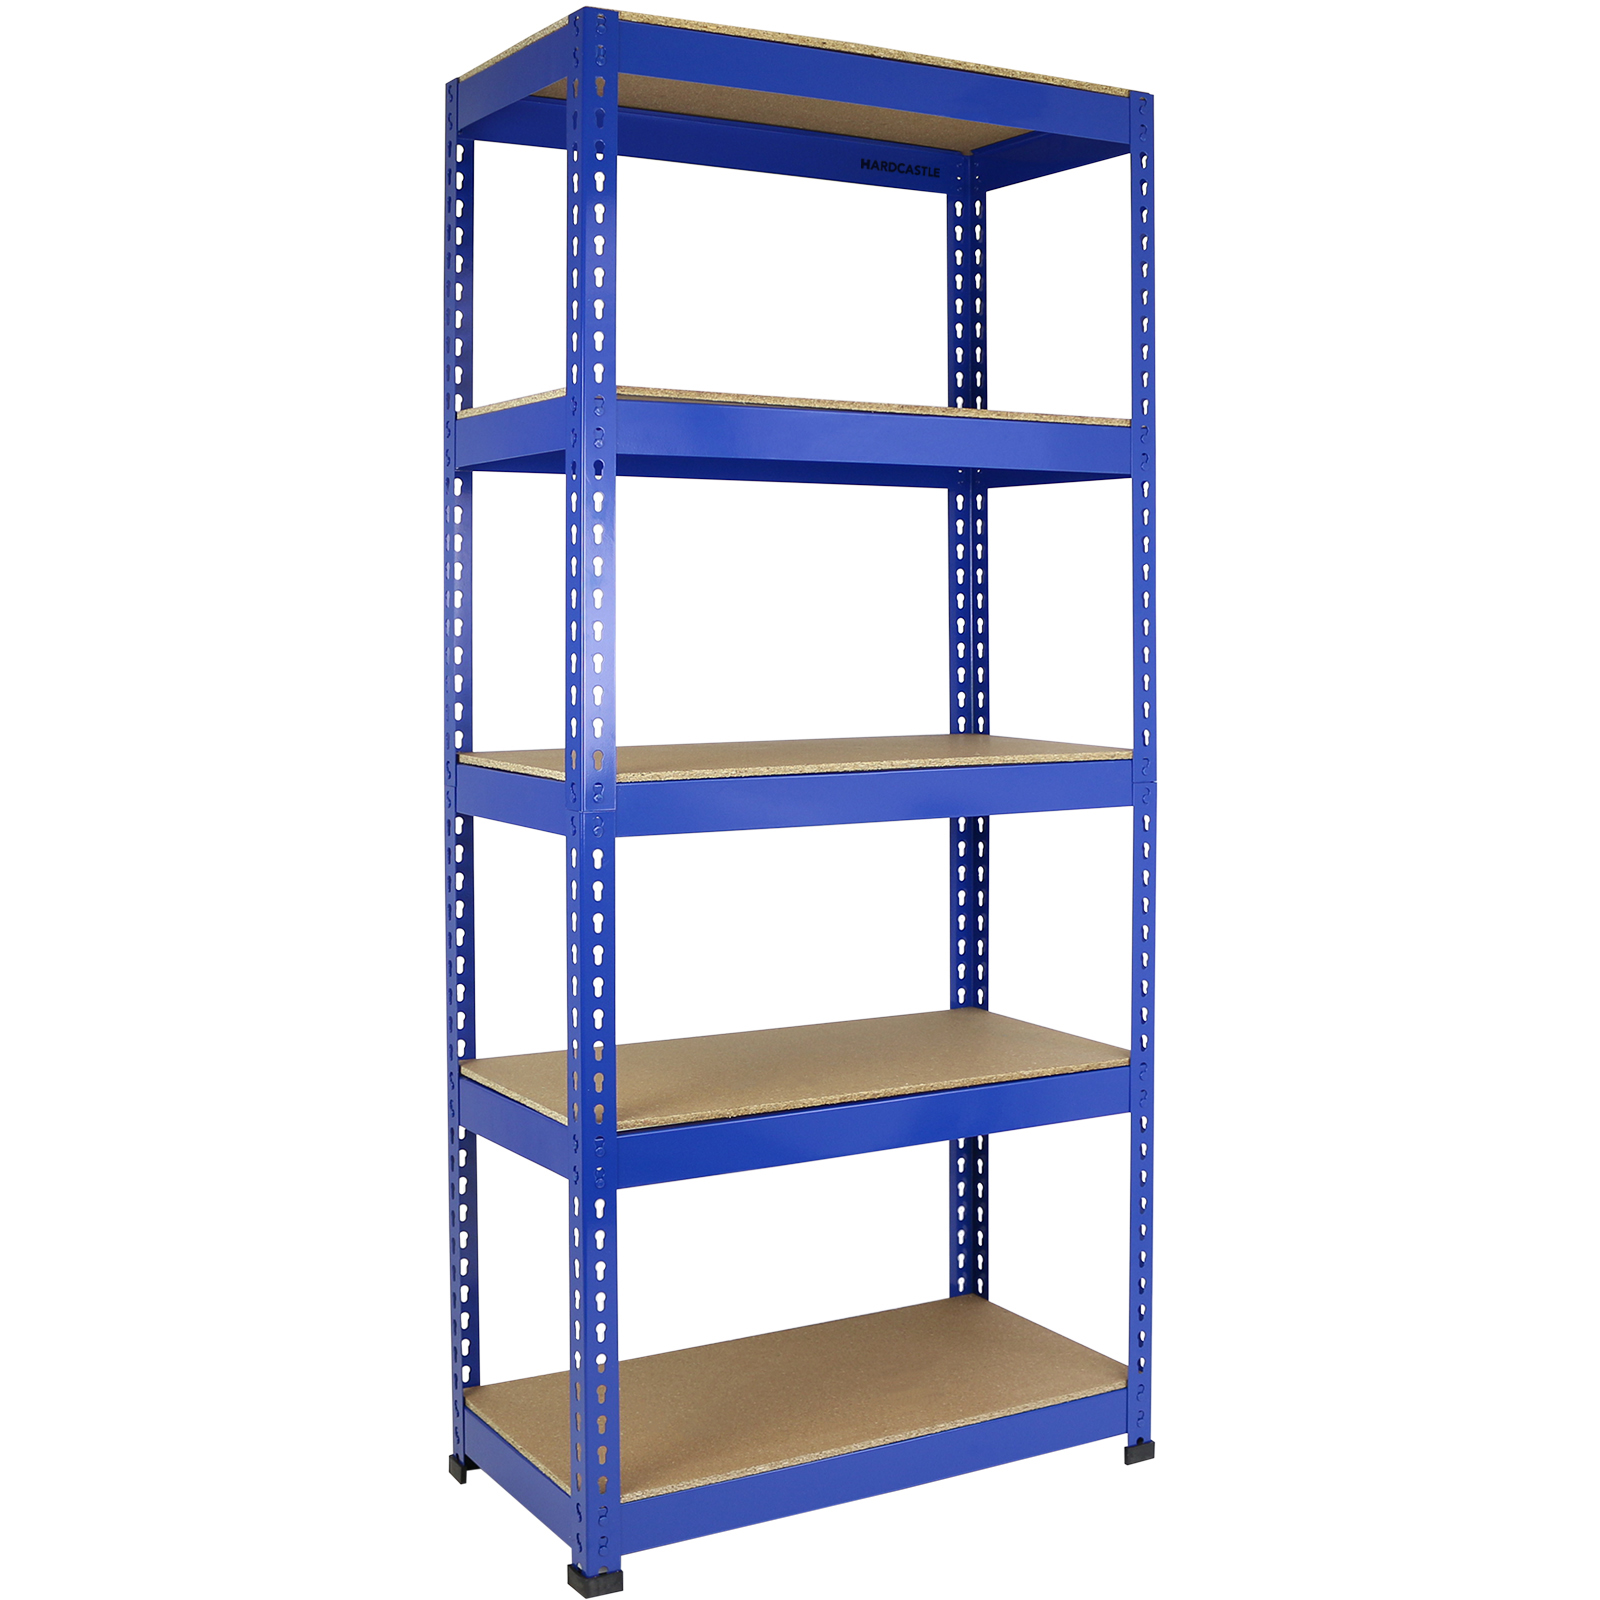 shelving itm duty for metal shelves unit grey heavy garage storage tier boltless